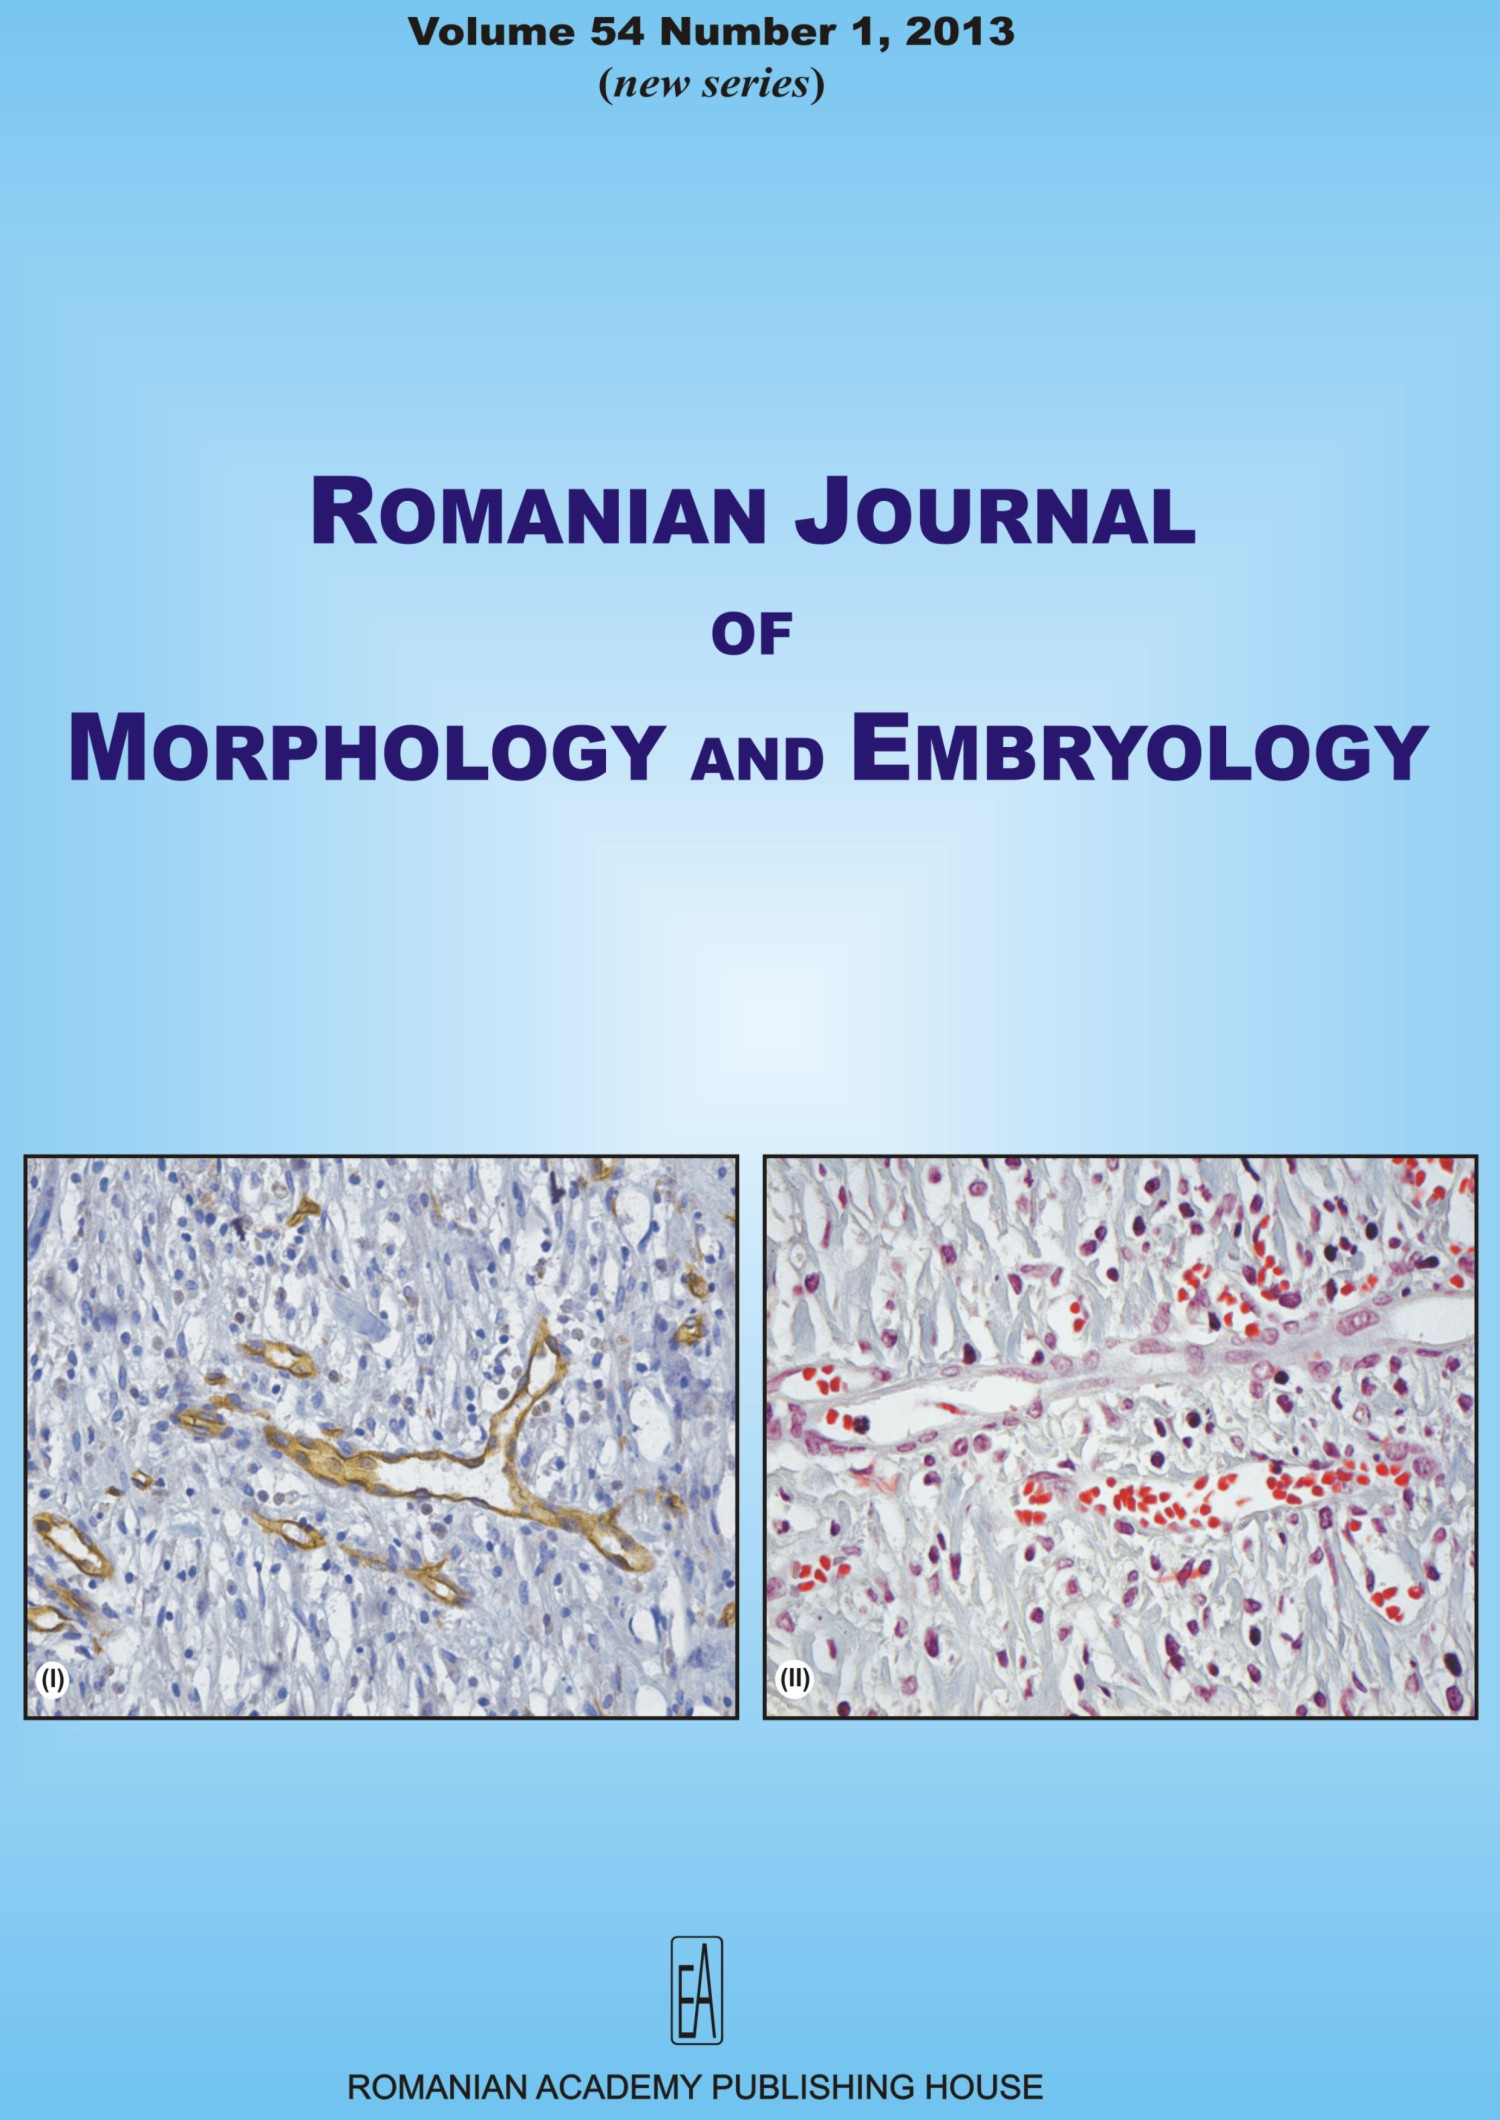 Romanian Journal of Morphology and Embryology, vol. 54 no. 1, 2013